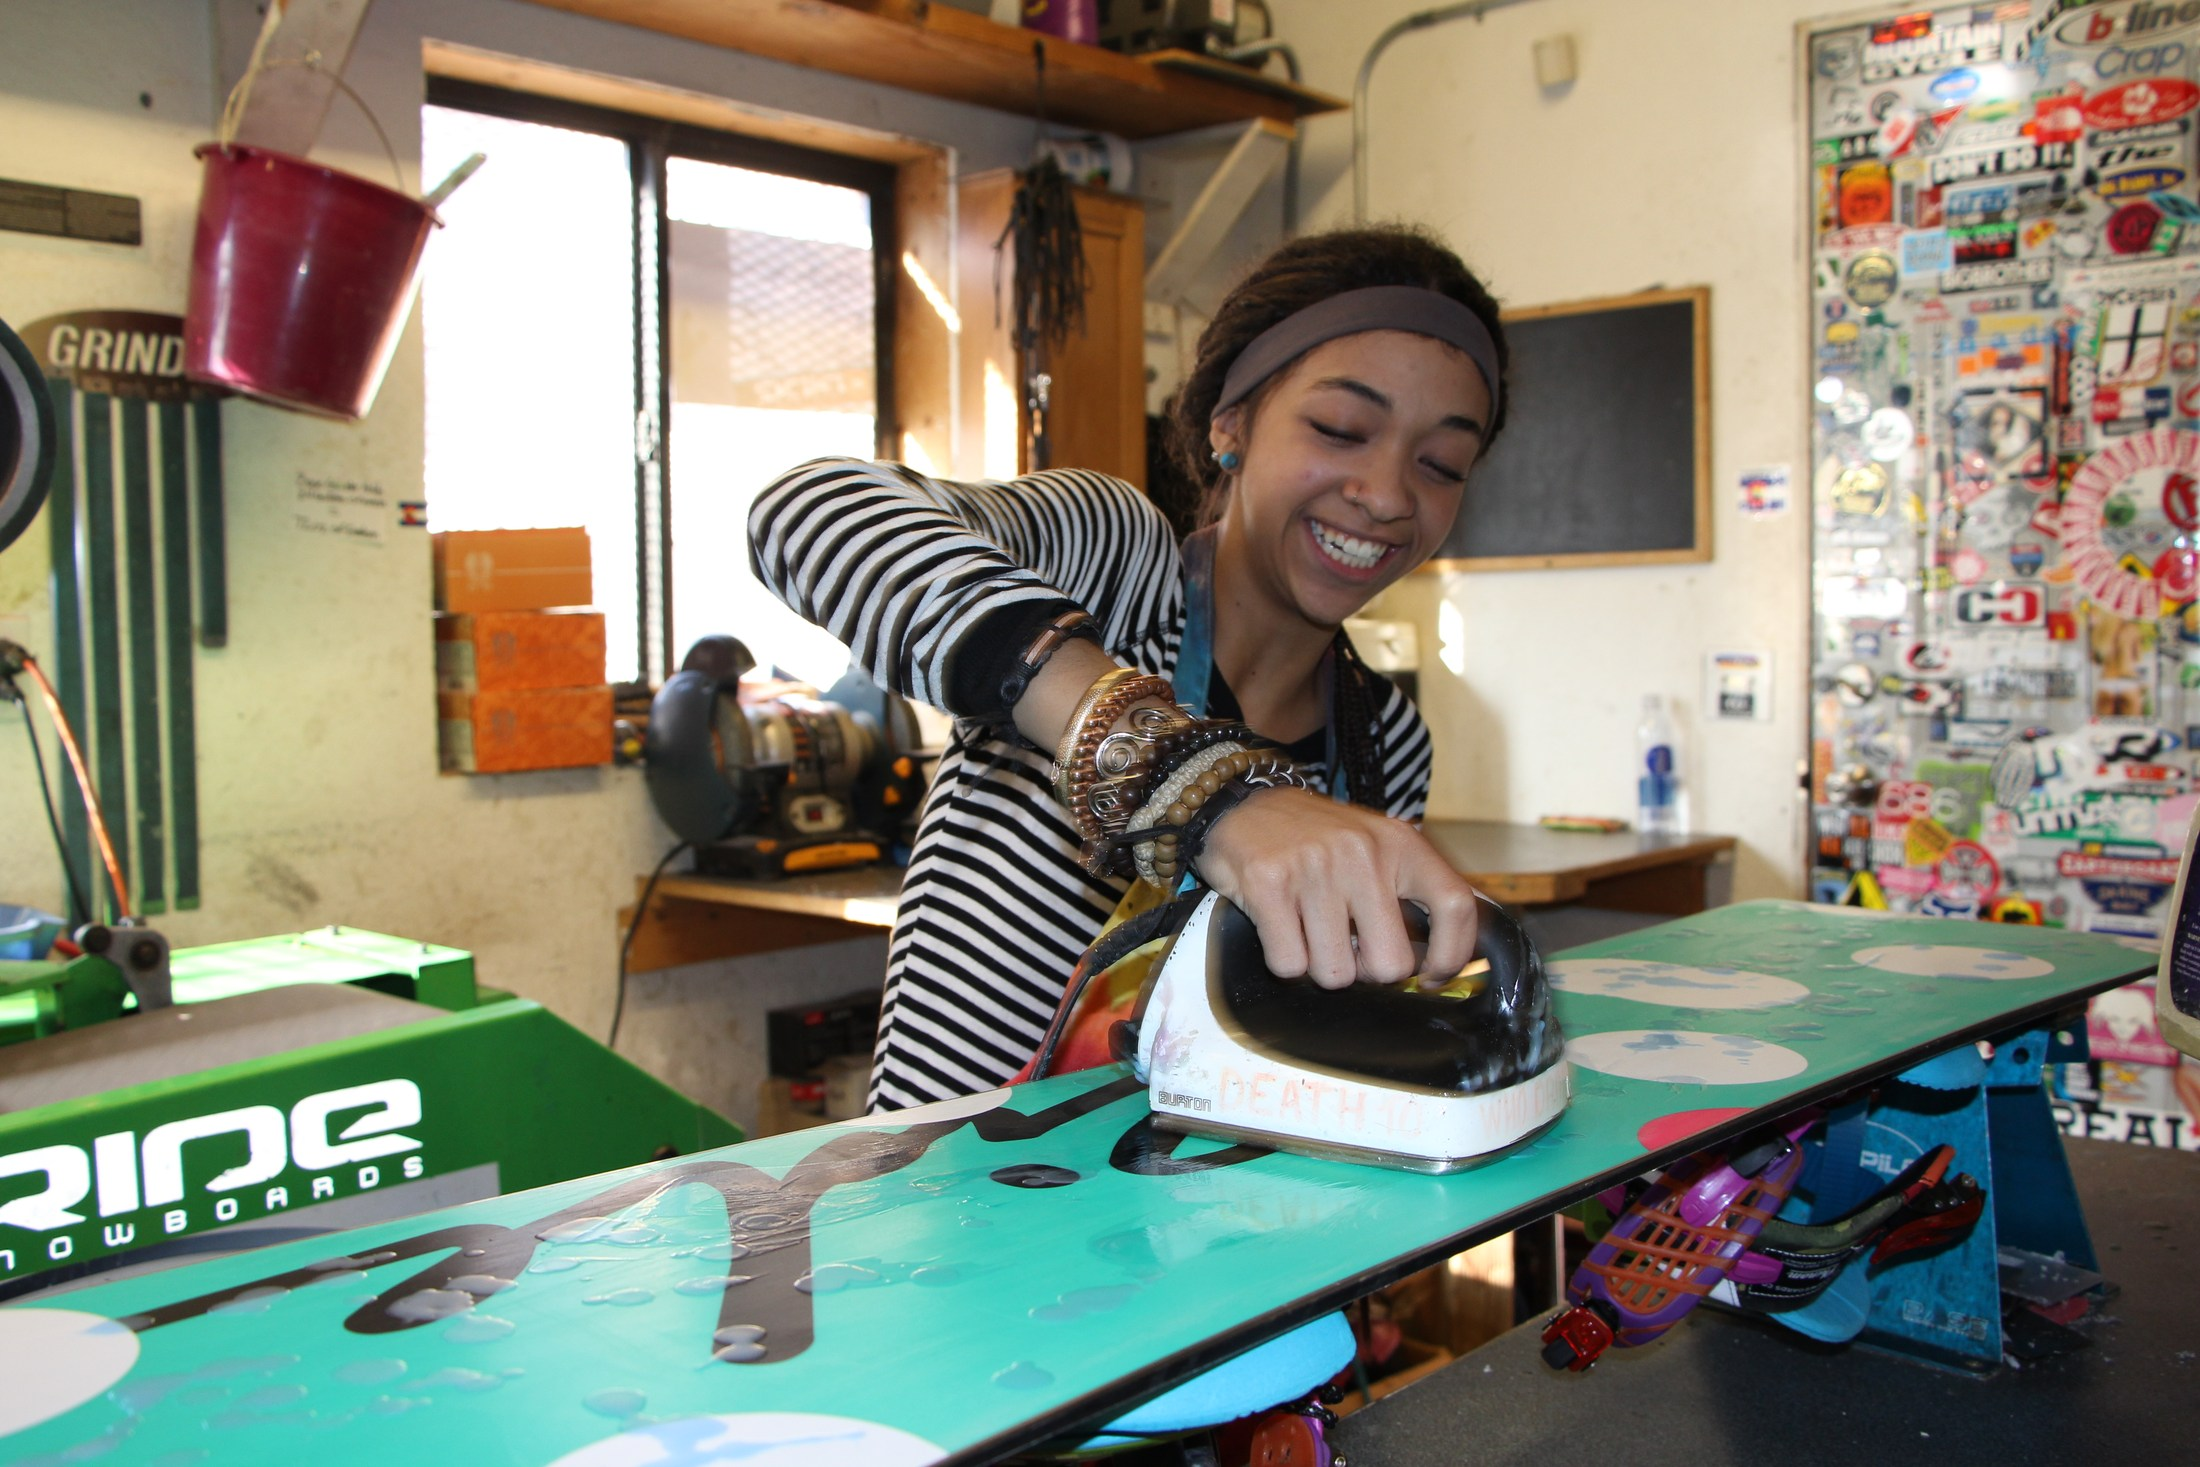 Student waxing a snowboard while interning at a ski shop.